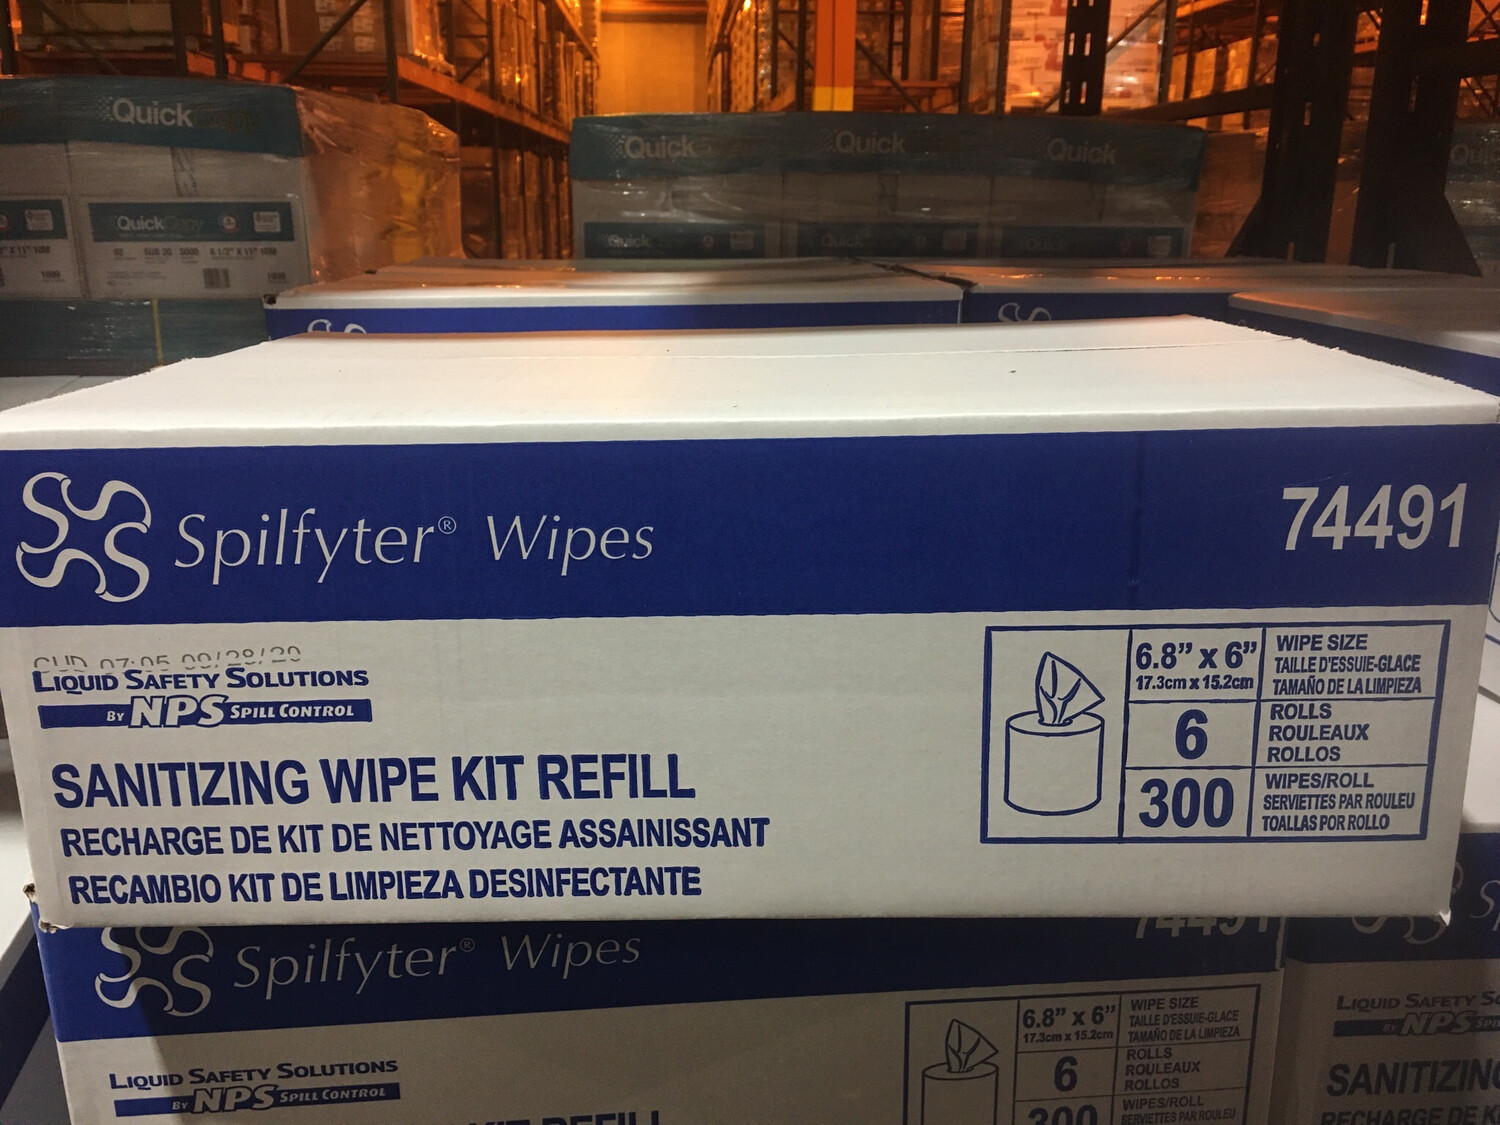 Wipes, refills for Spilfy